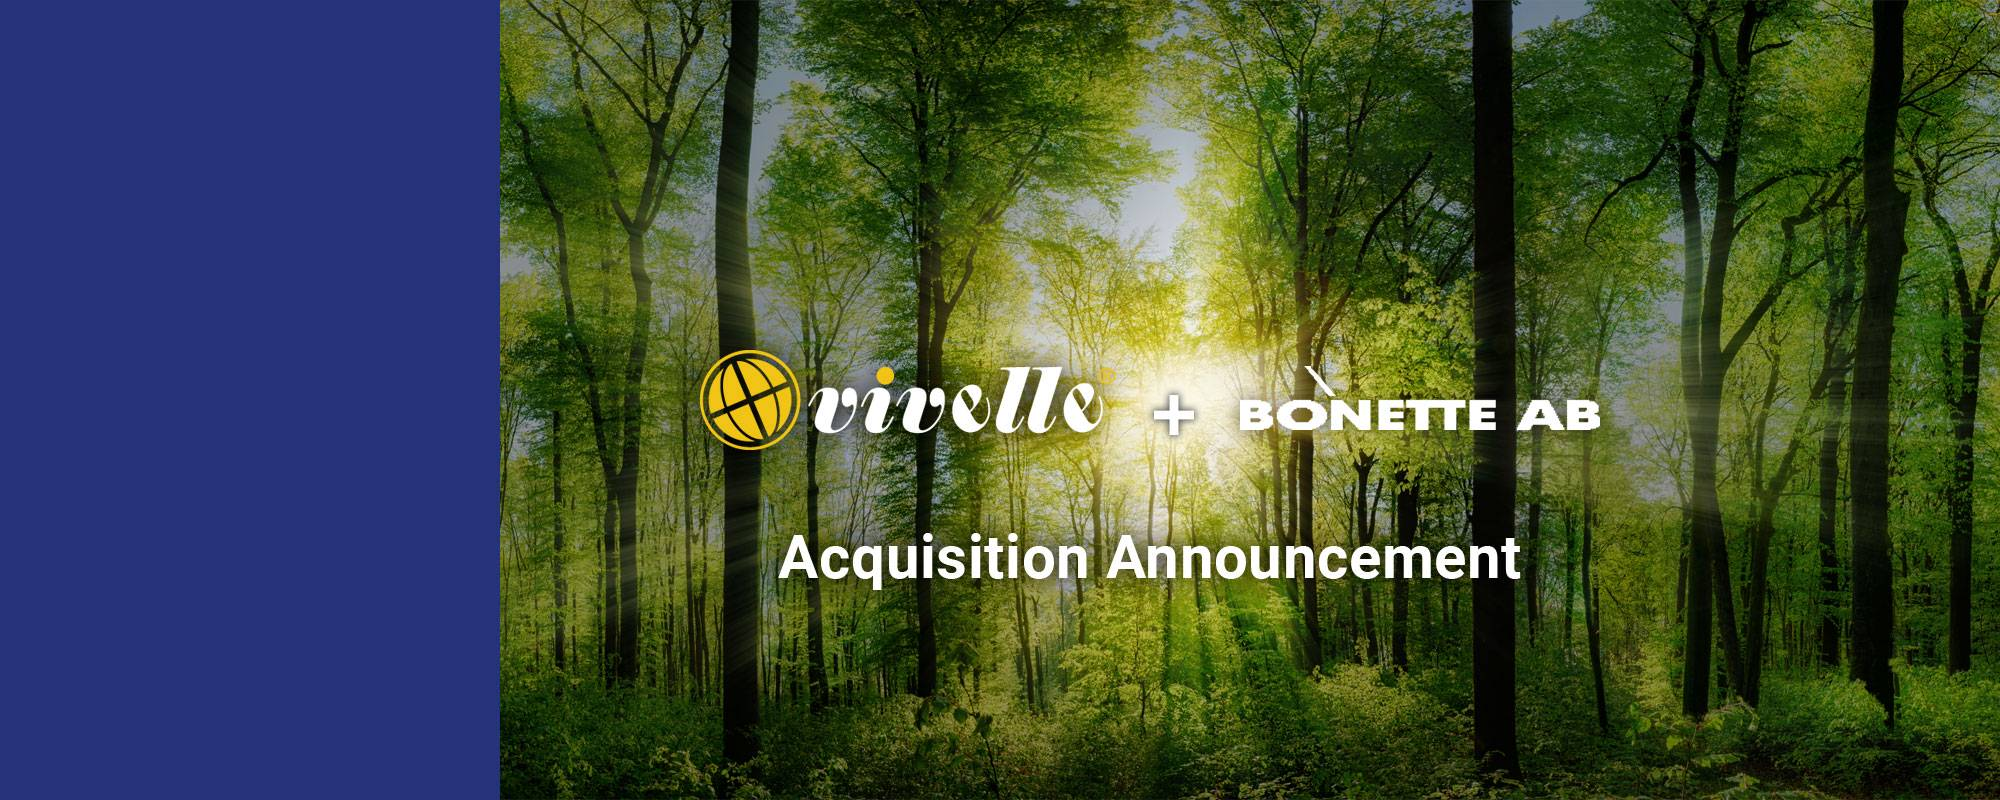 We are pleased to announce our new acquisition